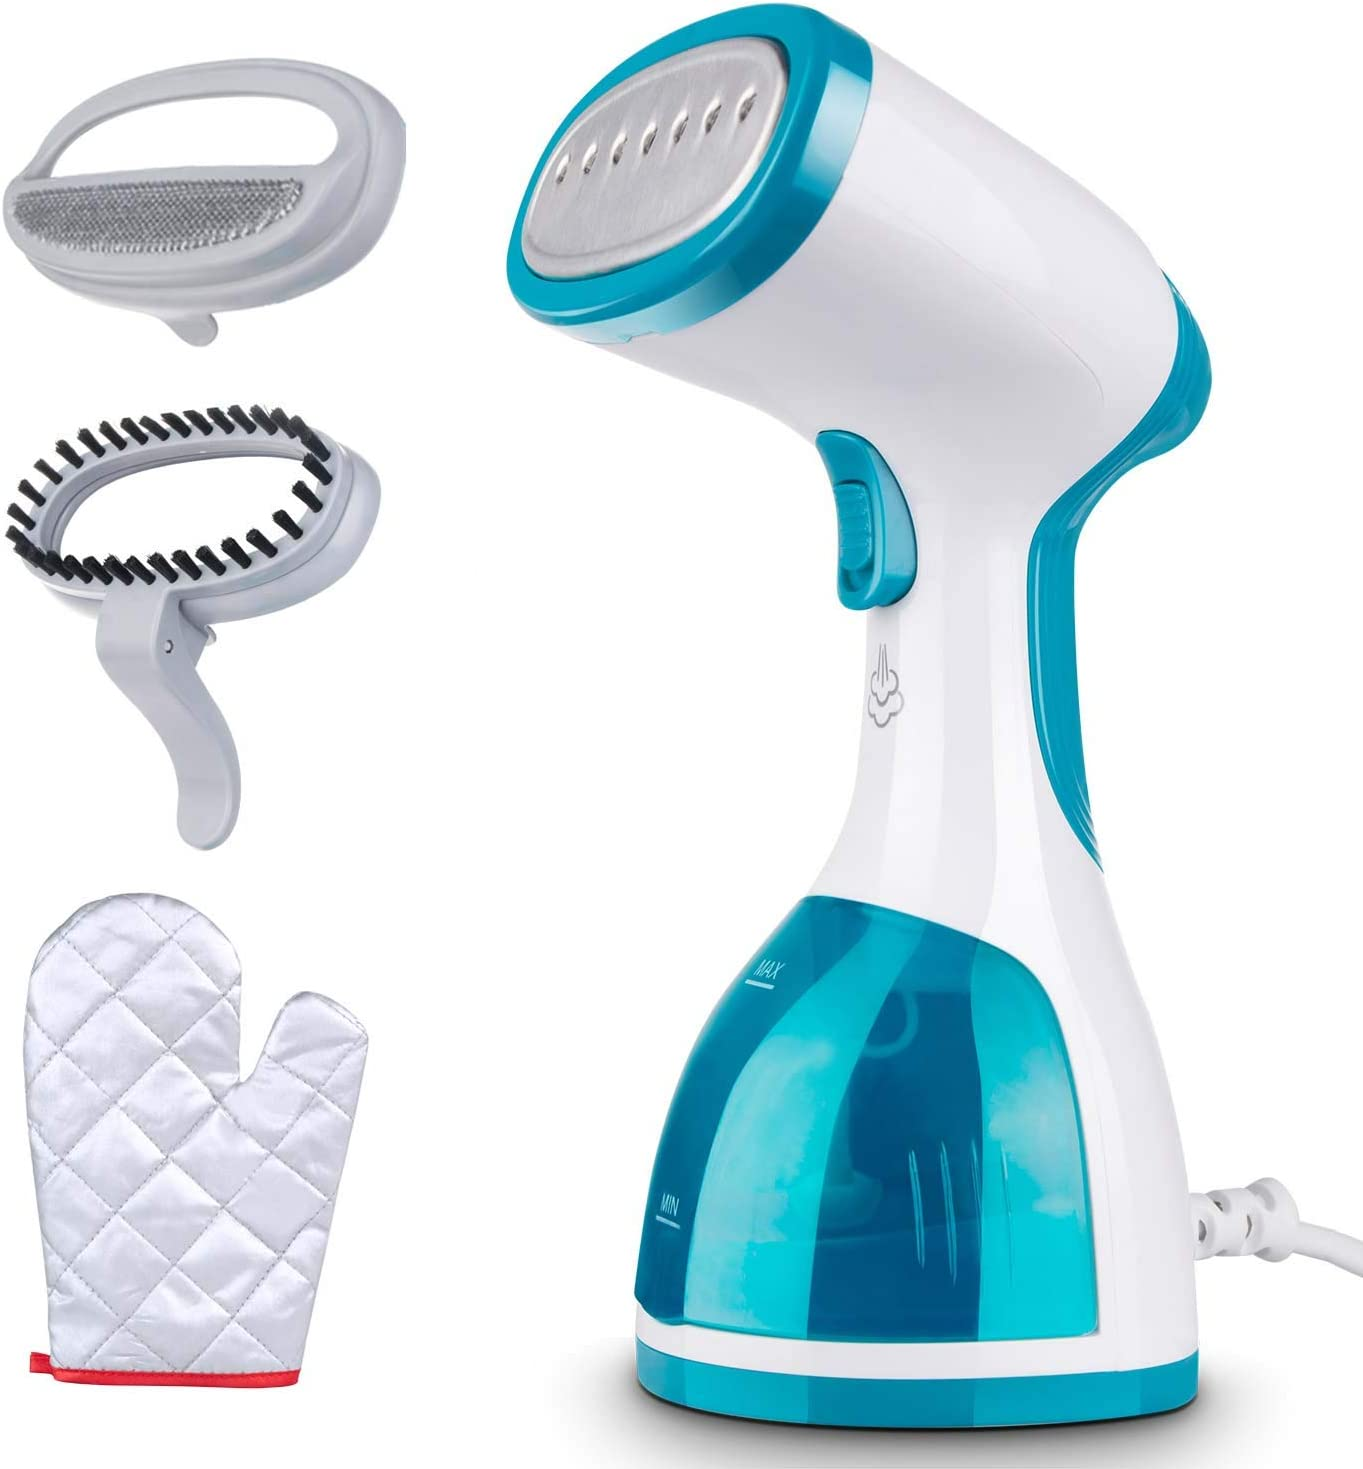 Fast /& Powerful Heat-Up Garment Steamer for Clothes Clothes Wrinkle Remover